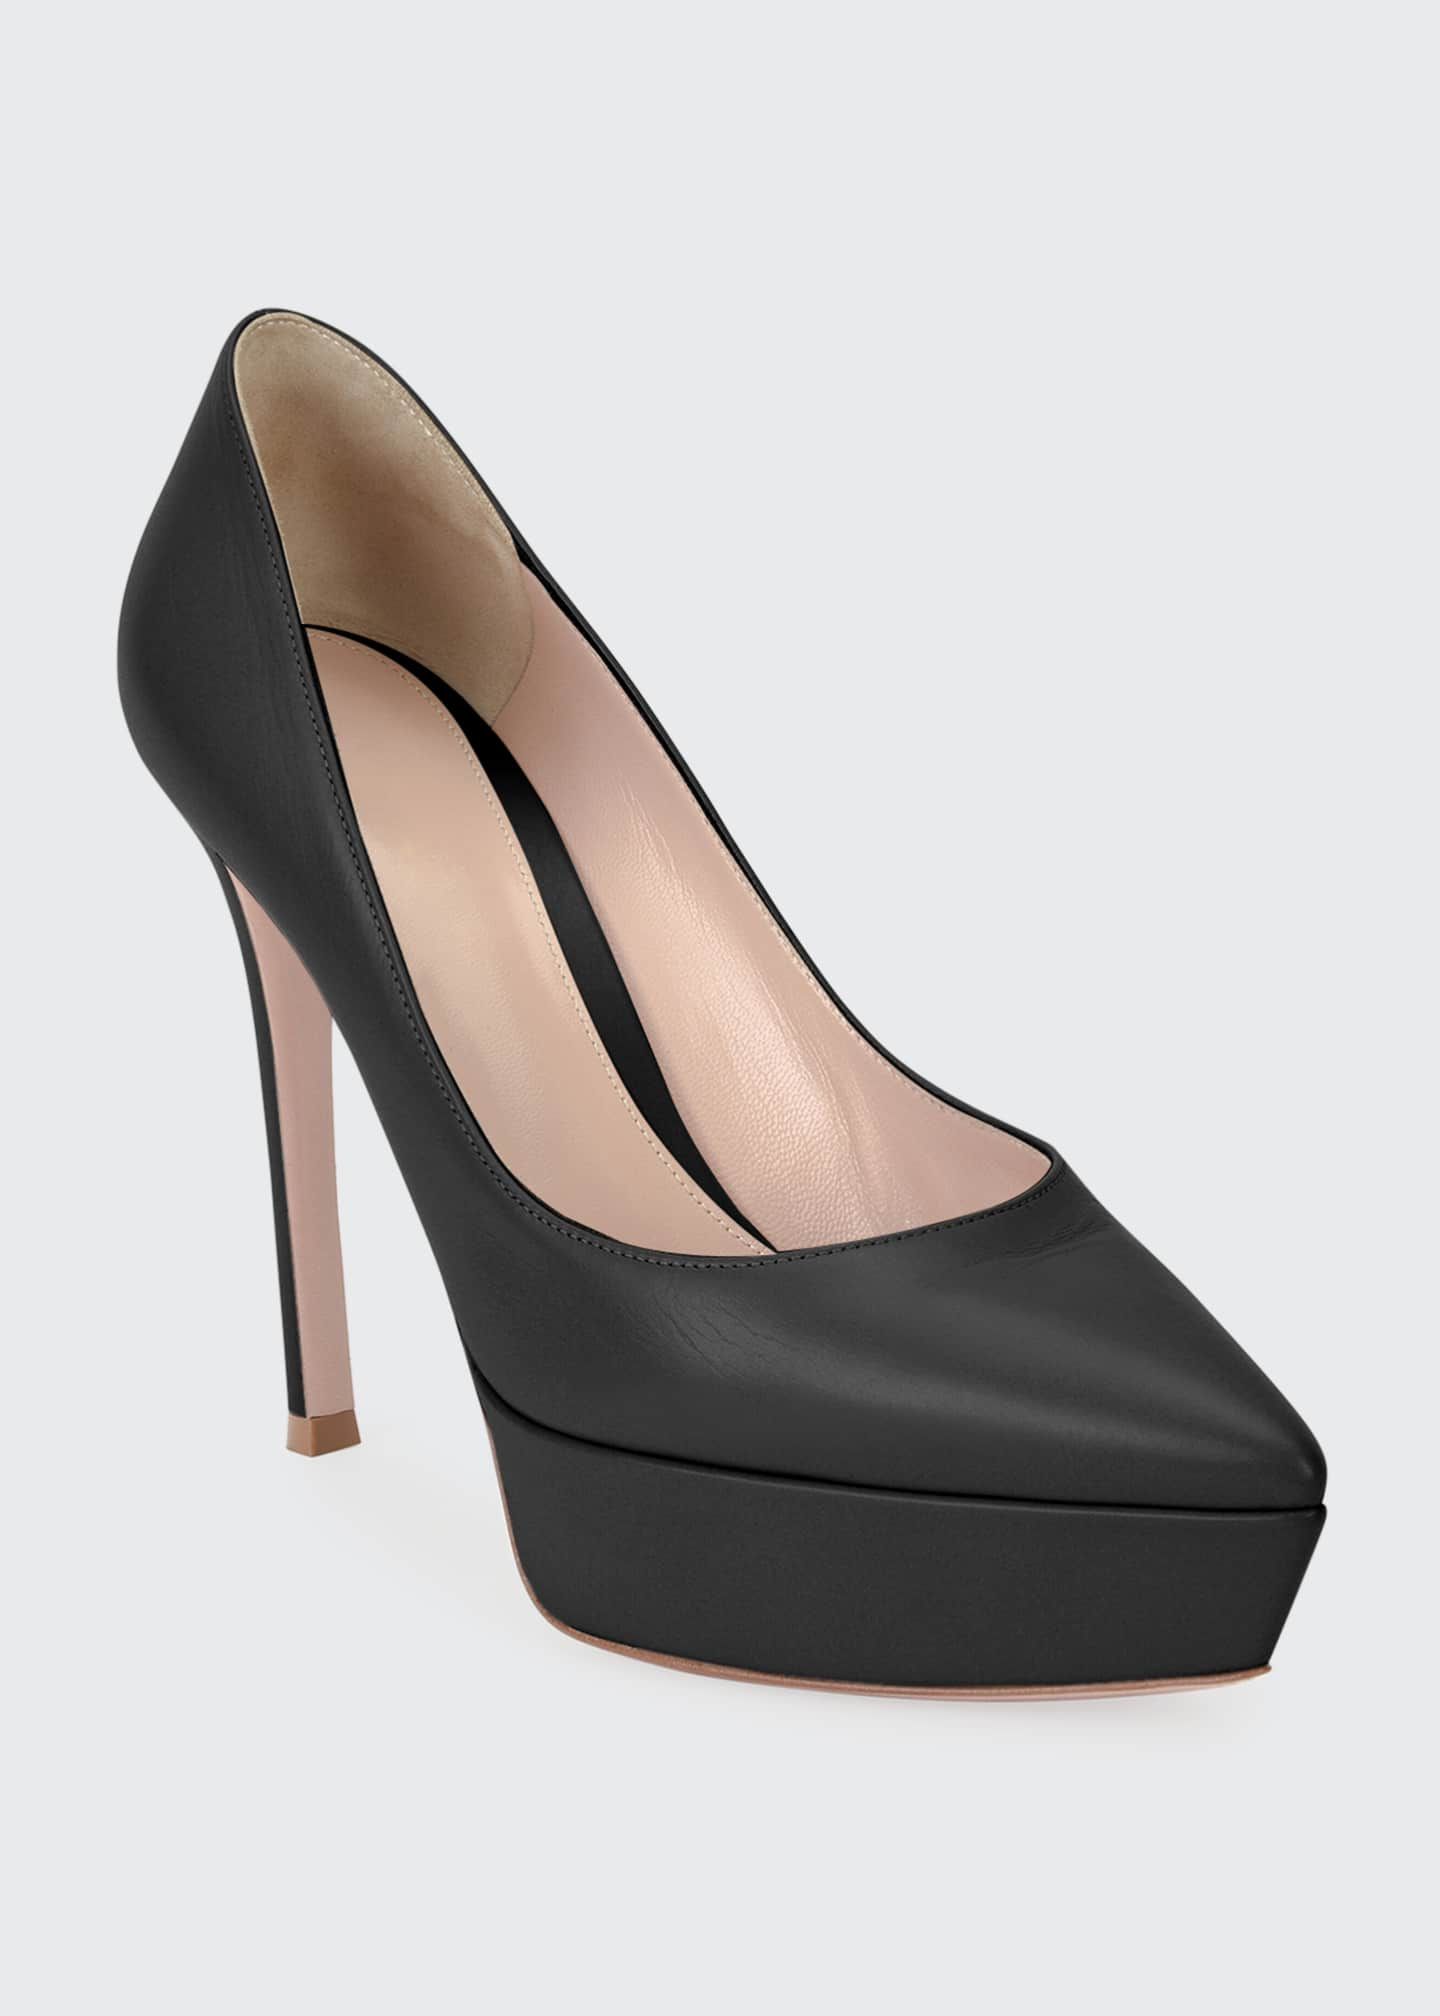 Gianvito Rossi Leather Platform Point-Toe Pump